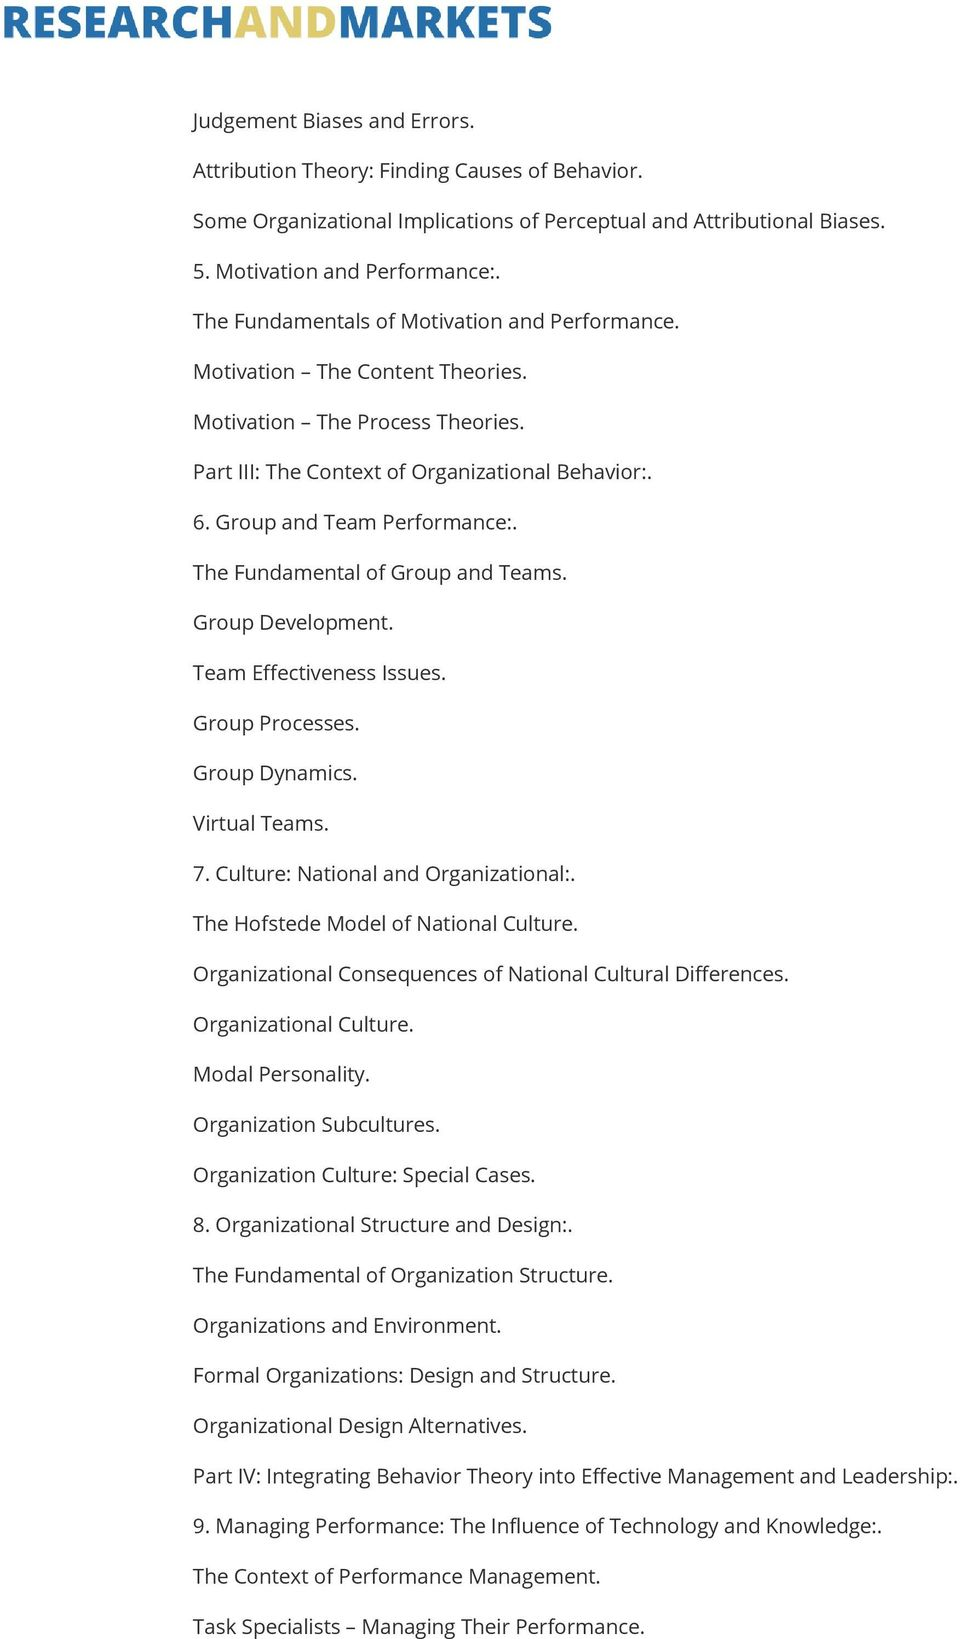 The Fundamental of Group and Teams. Group Development. Team Effectiveness Issues. Group Processes. Group Dynamics. Virtual Teams. 7. Culture: National and Organizational:.